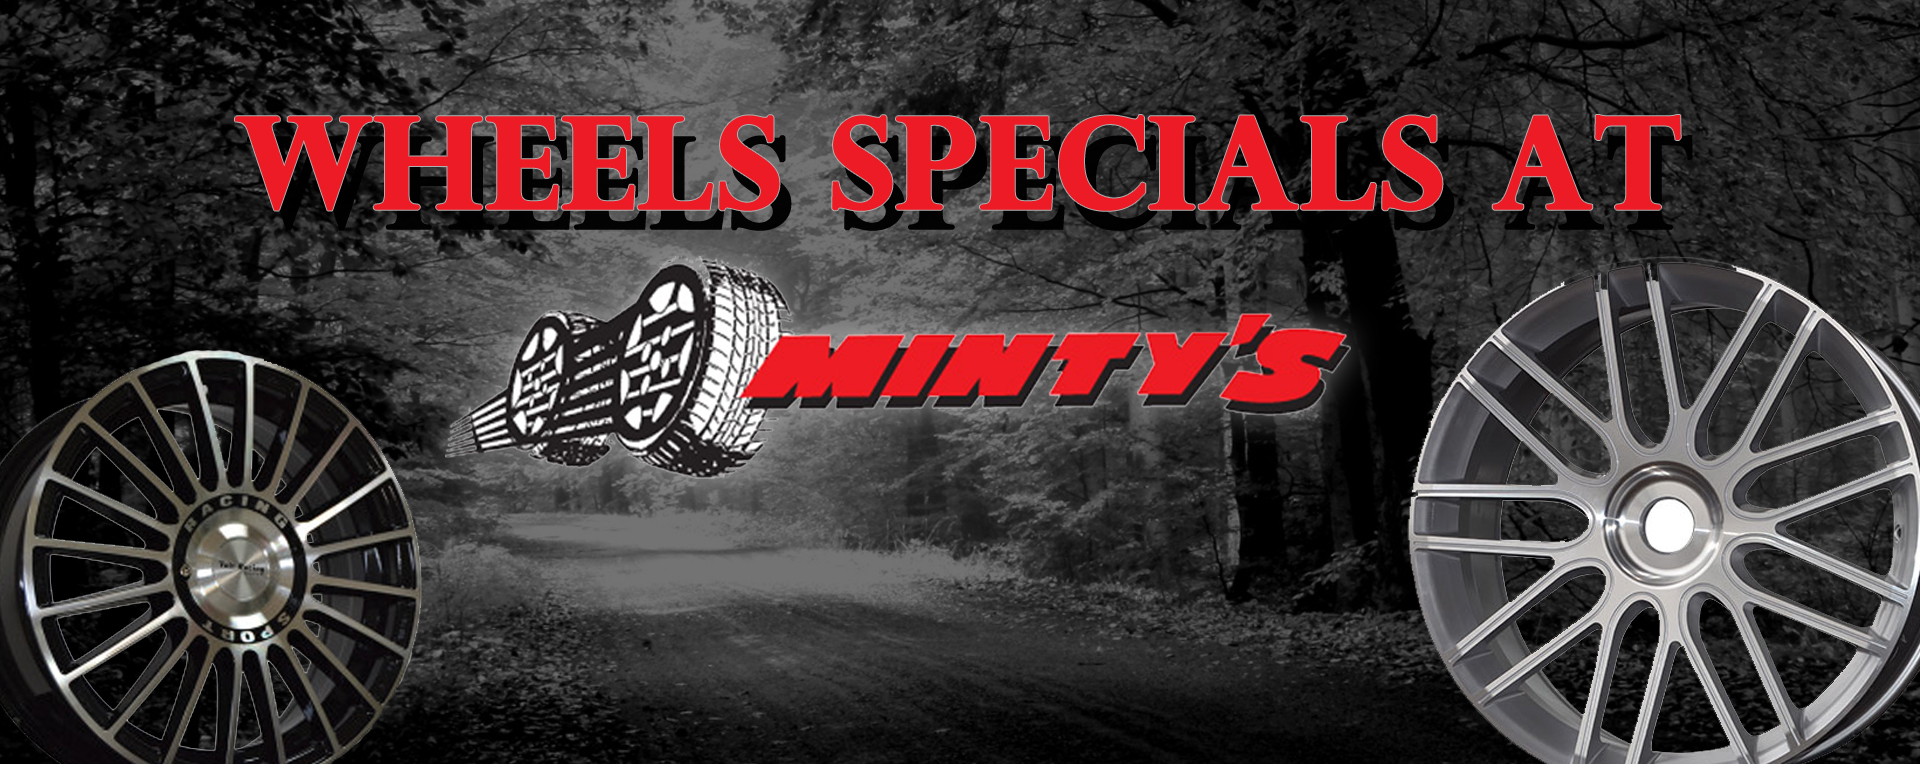 specials-at-mintys